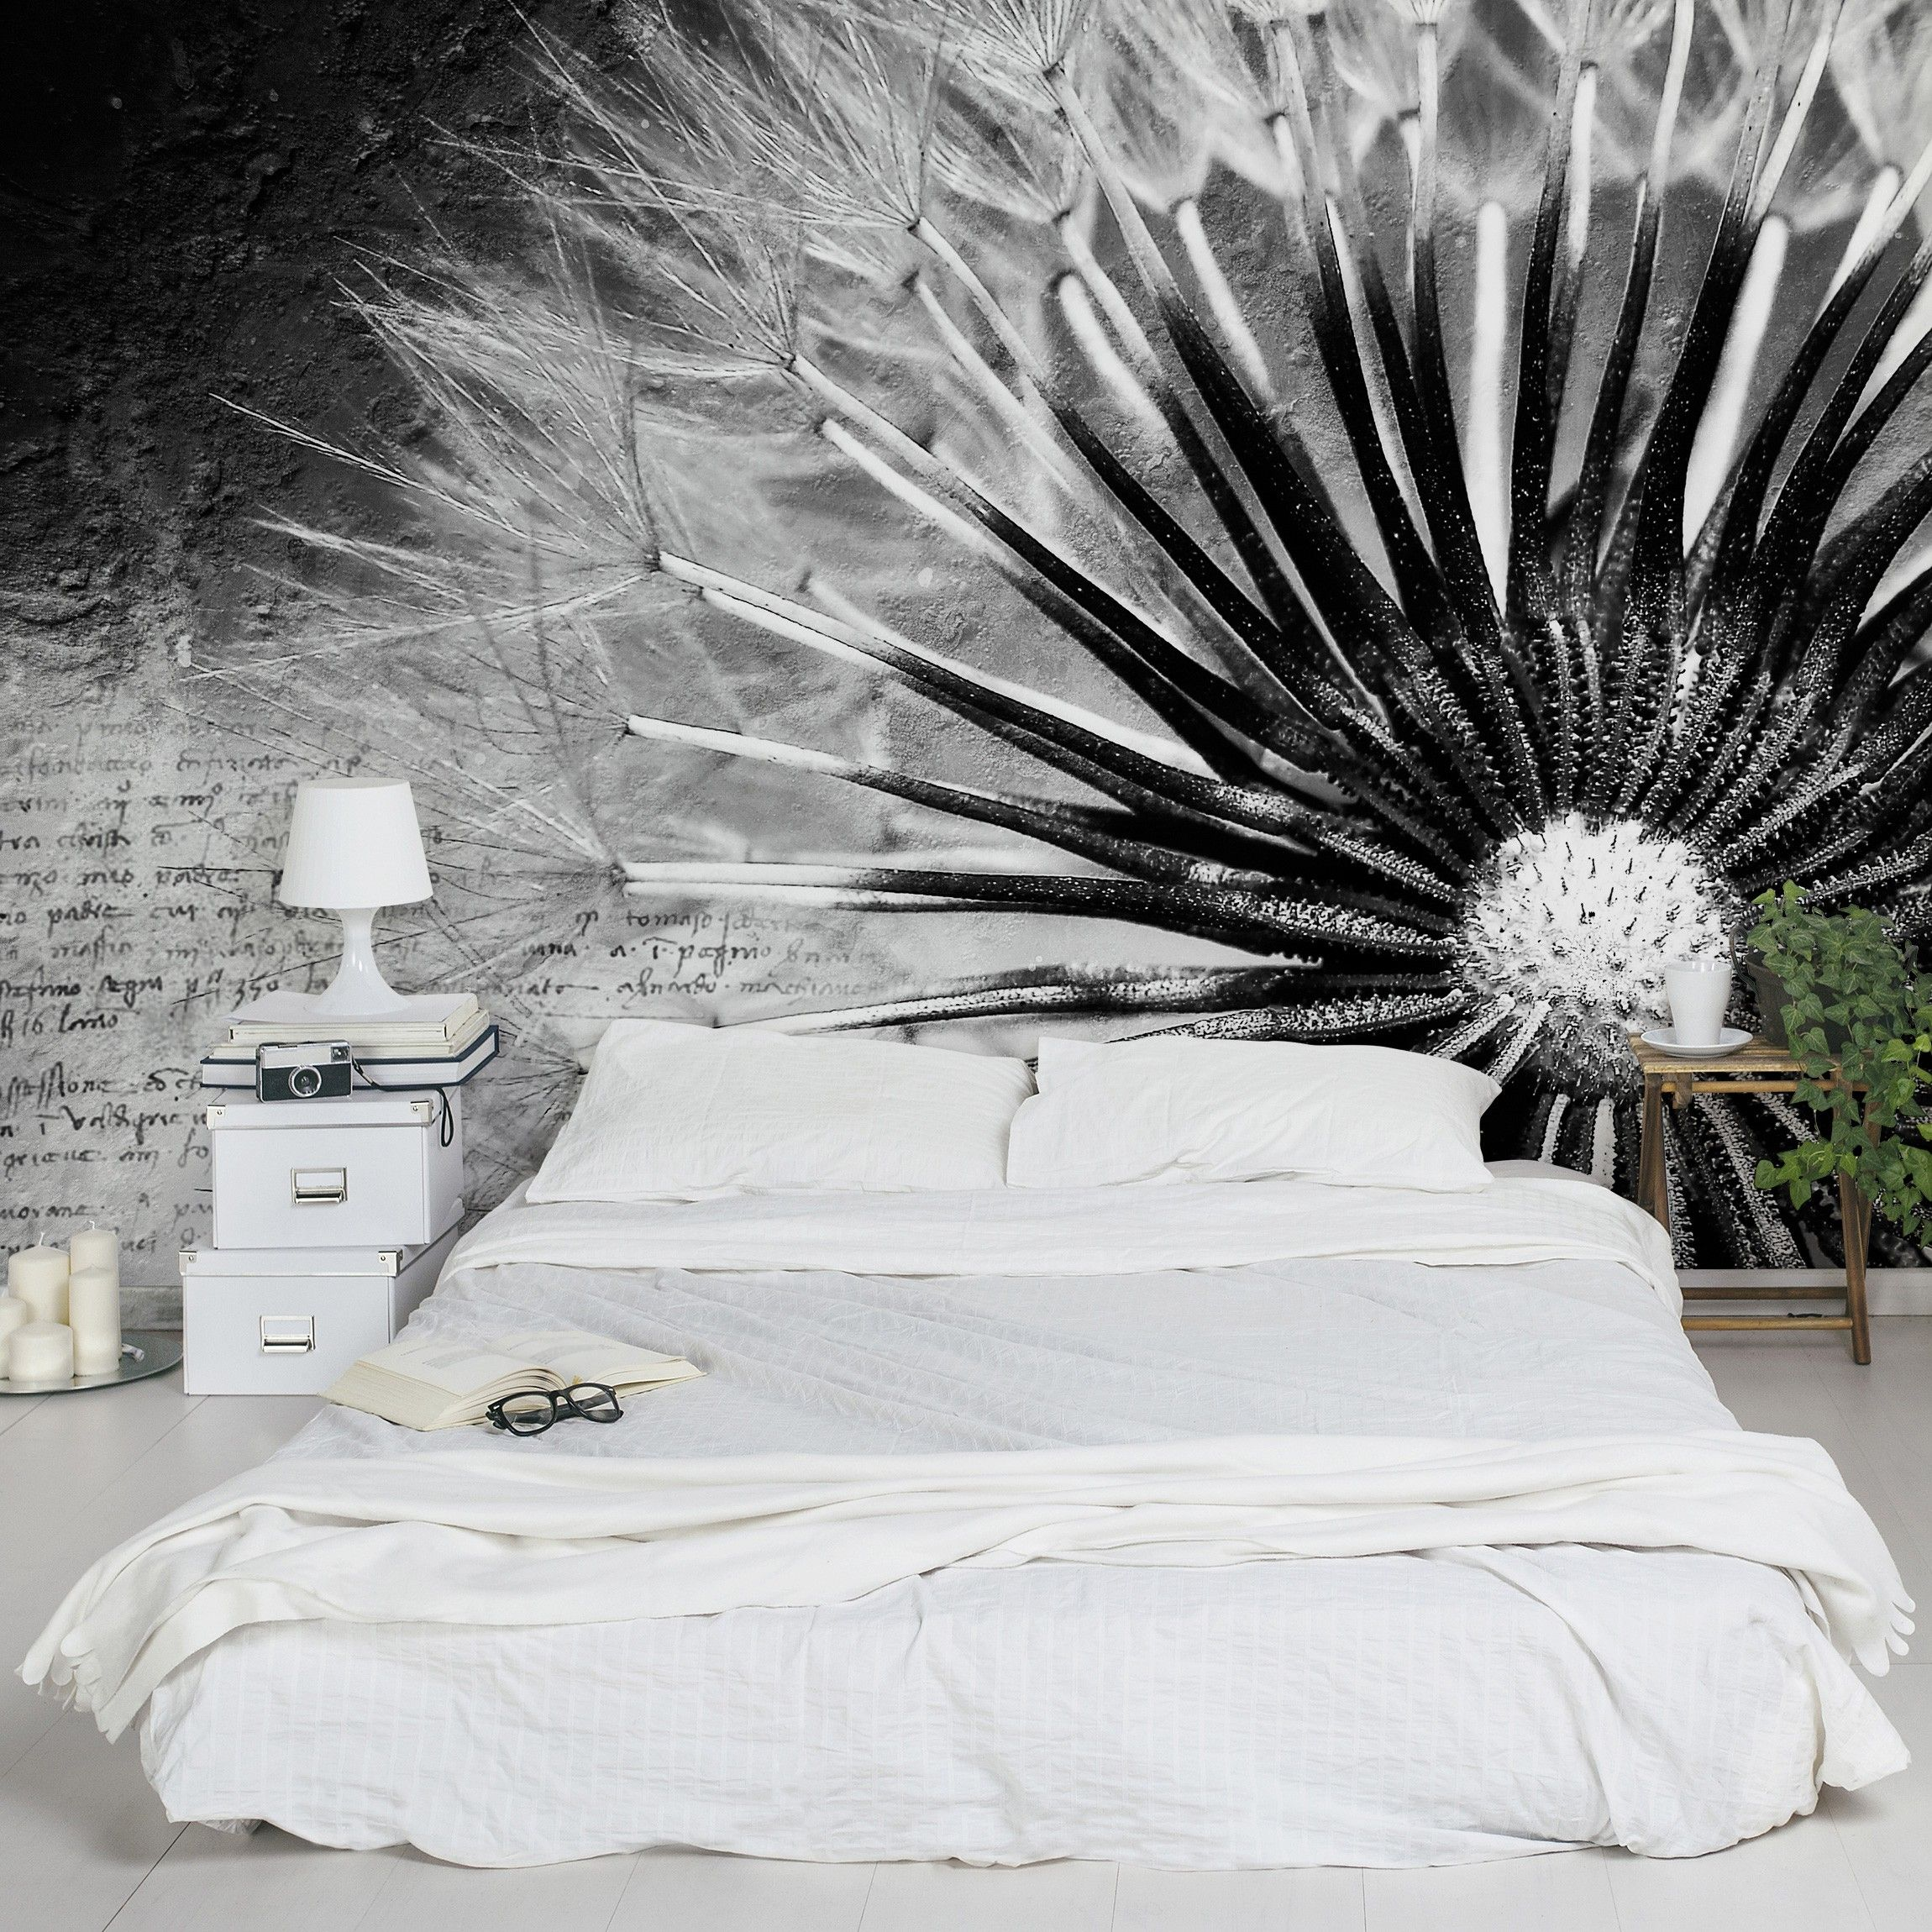 selbstklebende tapete pusteblume schwarz wei fototapete blumen tapete. Black Bedroom Furniture Sets. Home Design Ideas